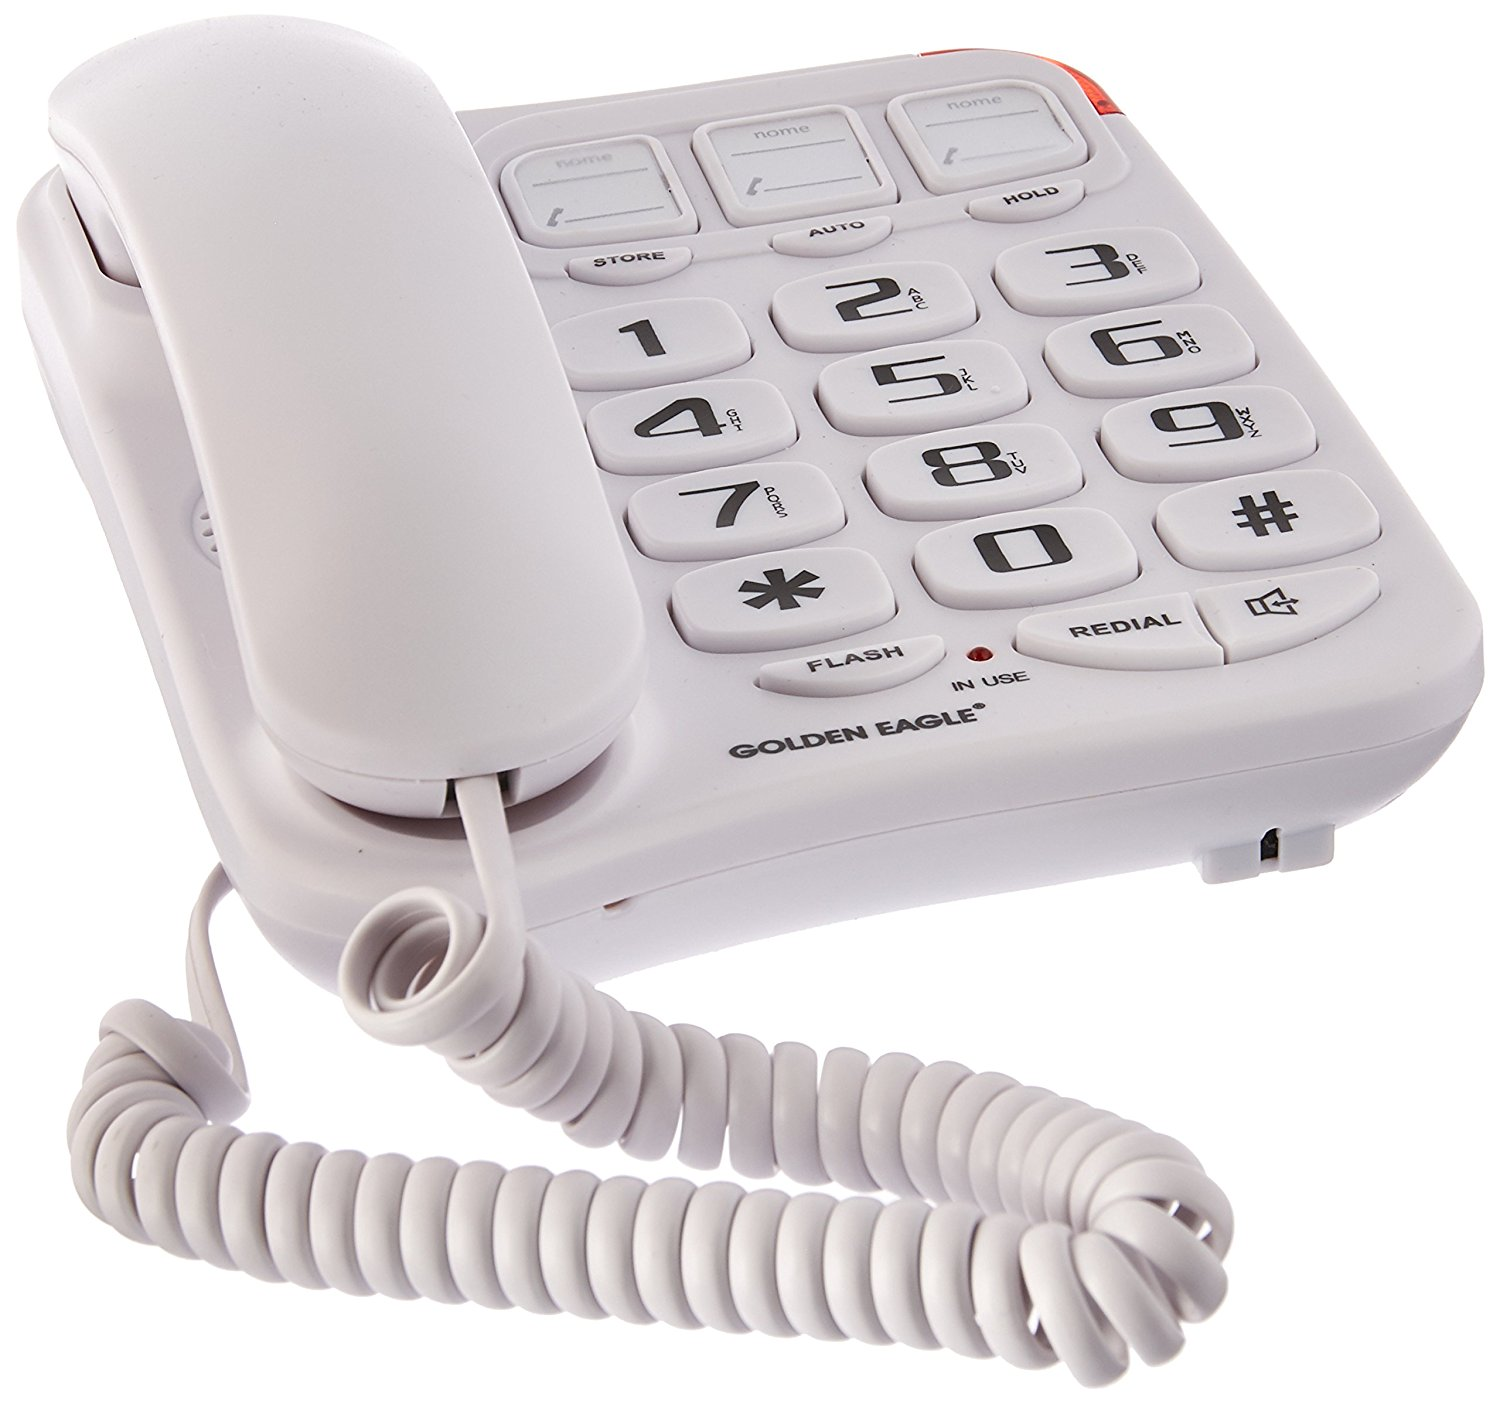 Handset Landline Telephone (GE3104WH), Built in speakerphone By Golden Eagle